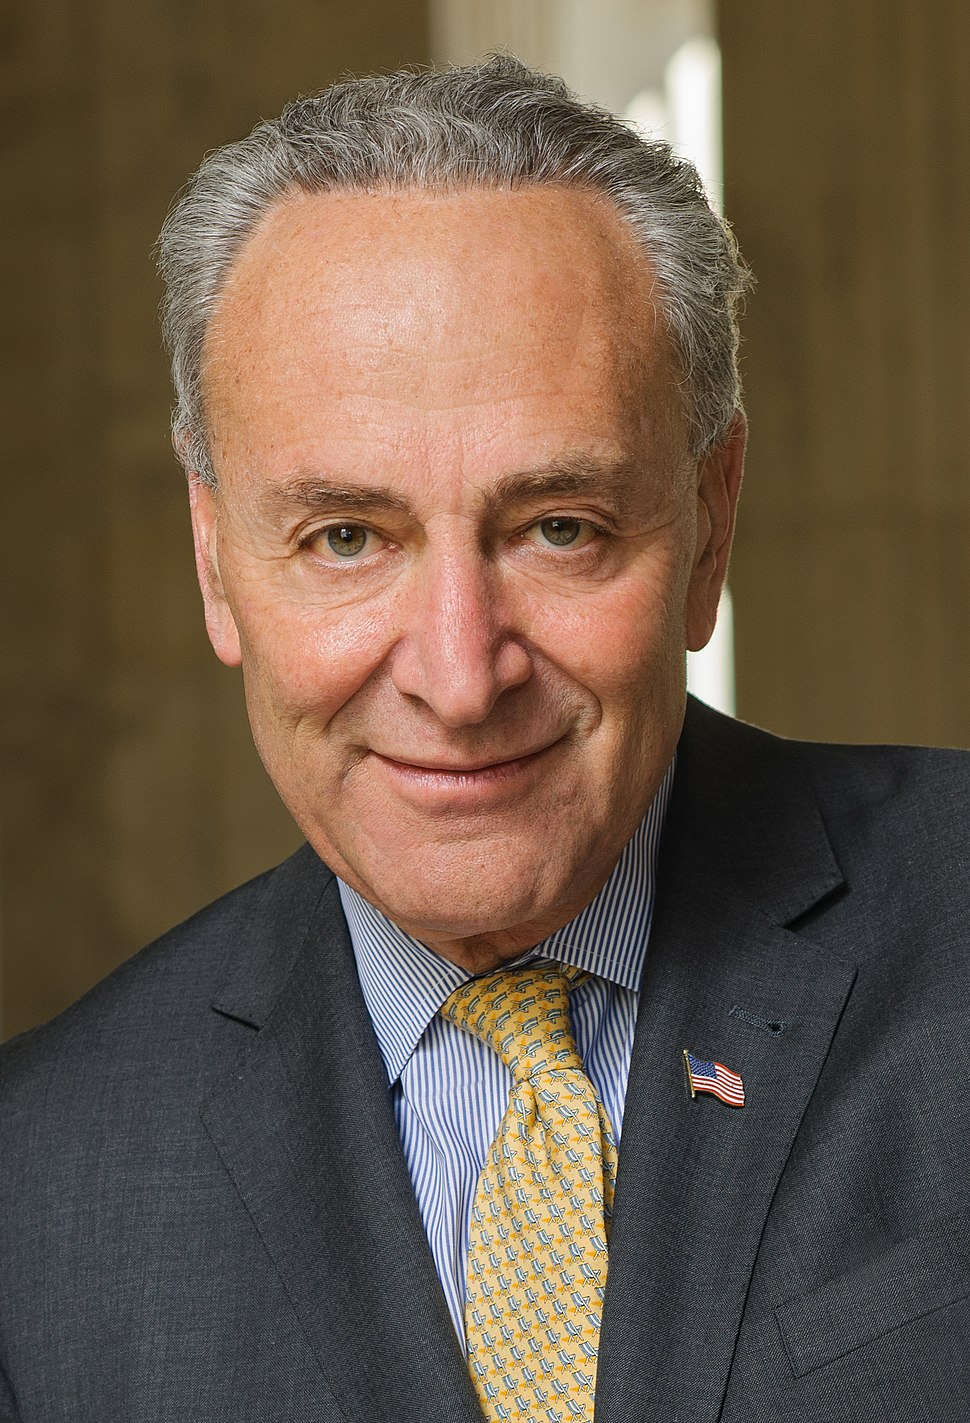 Chuck Schumer official photo (cropped)